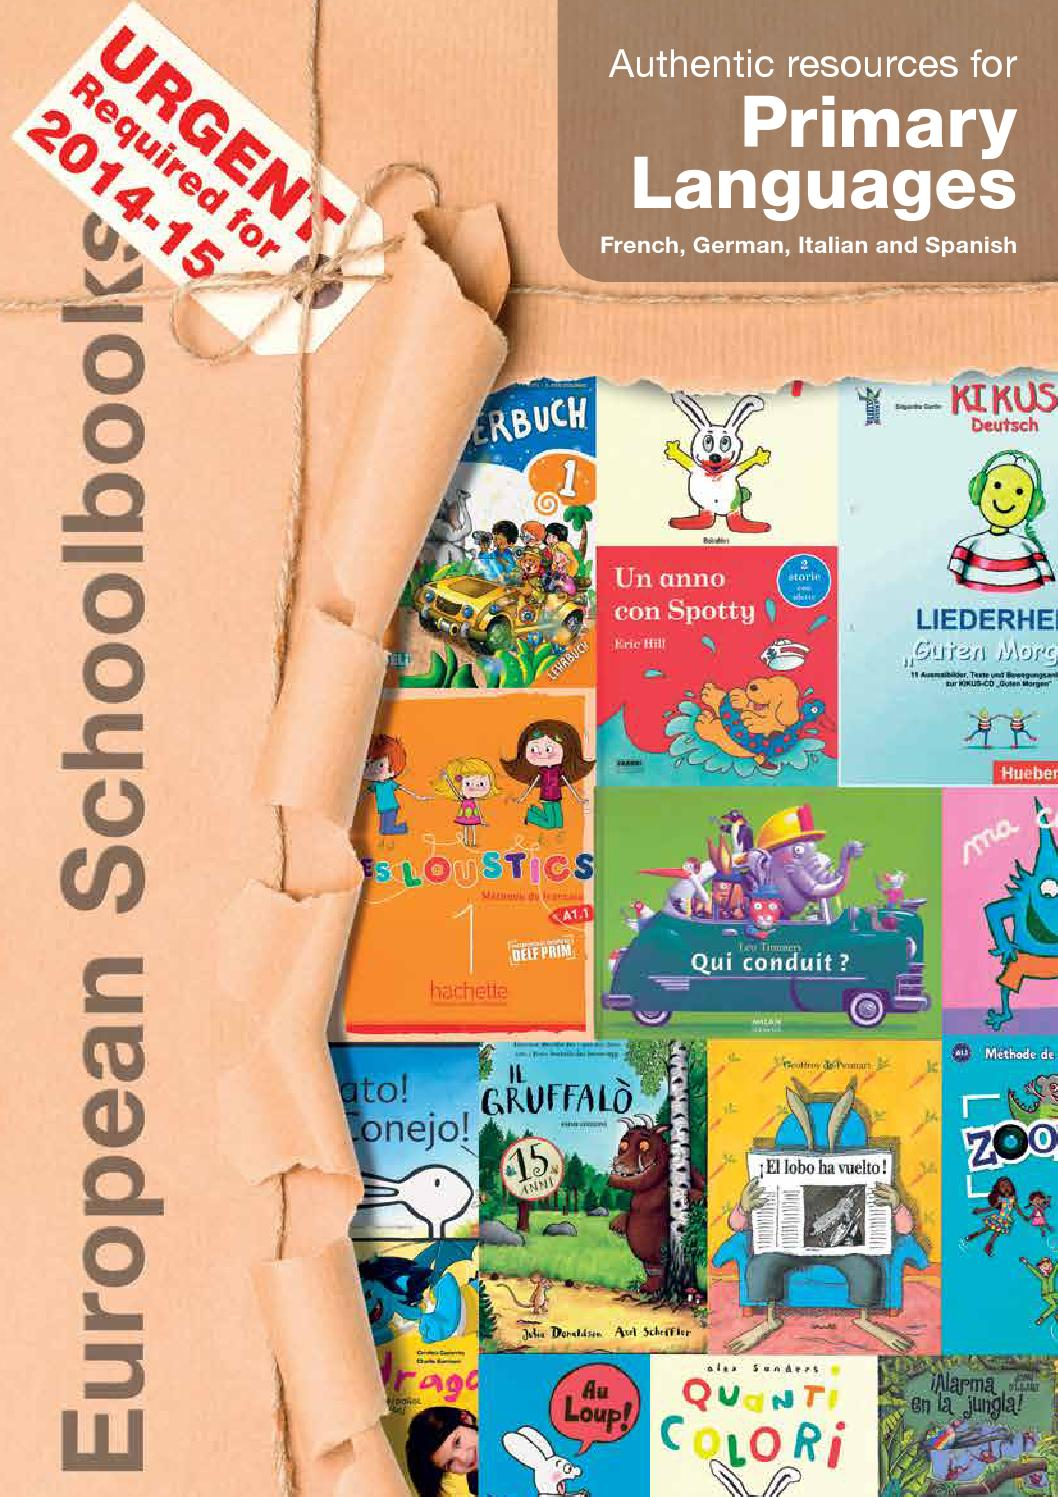 Primary Languages Catalogue 2014 by European Schoolbooks Ltd. - issuu